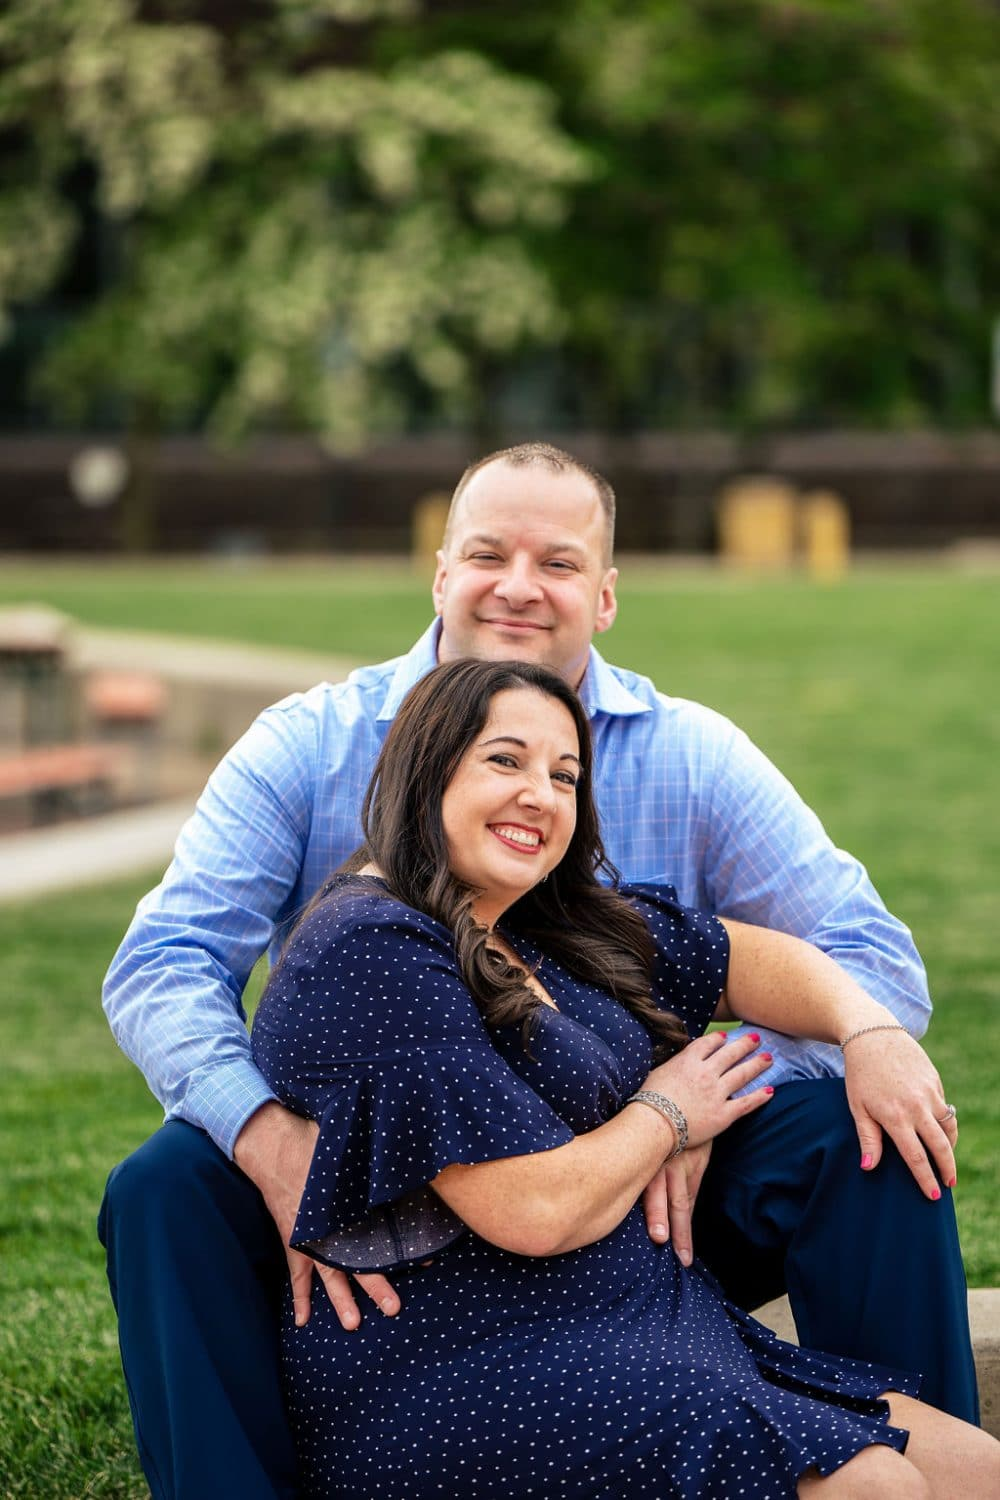 Couple smiling and posing for a photo Philadelphia Navy Yard Engagement Session Shot by John Ryan